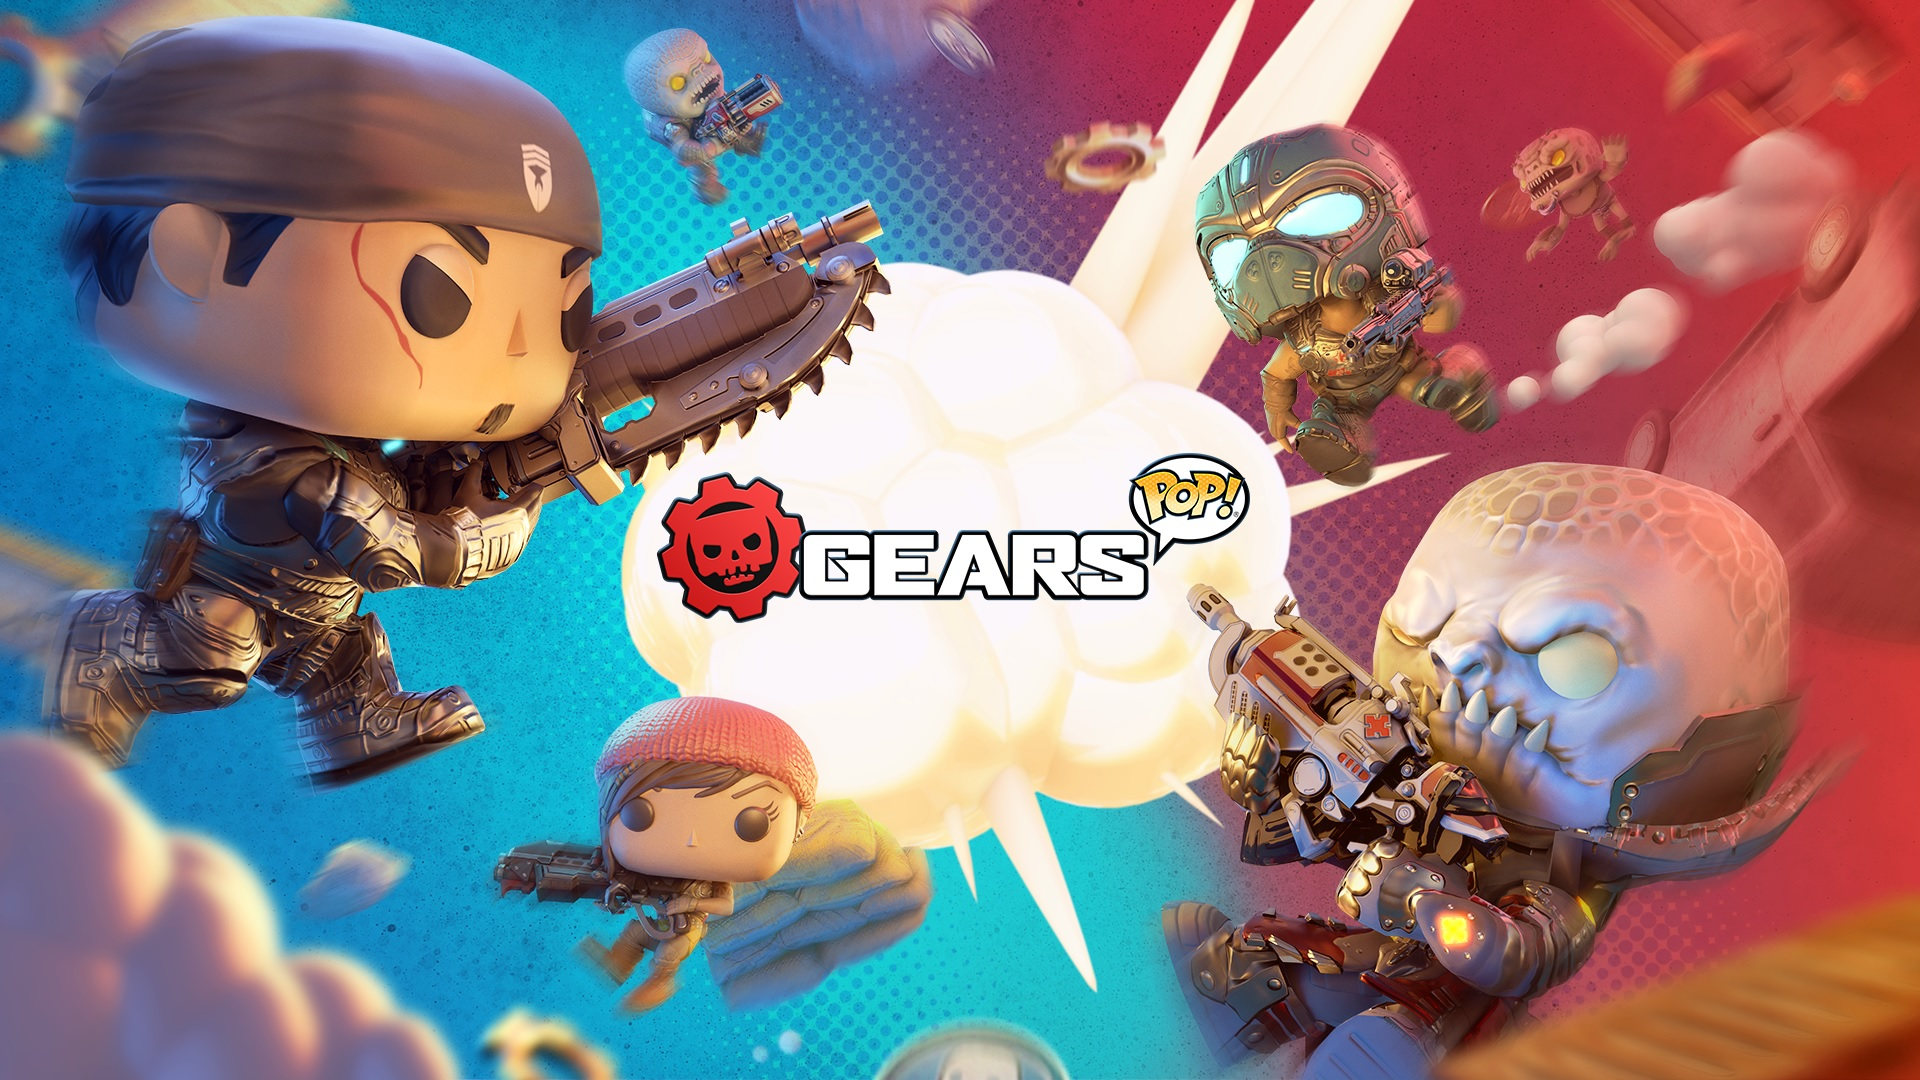 Gears Pop! is now available on PC and mobile